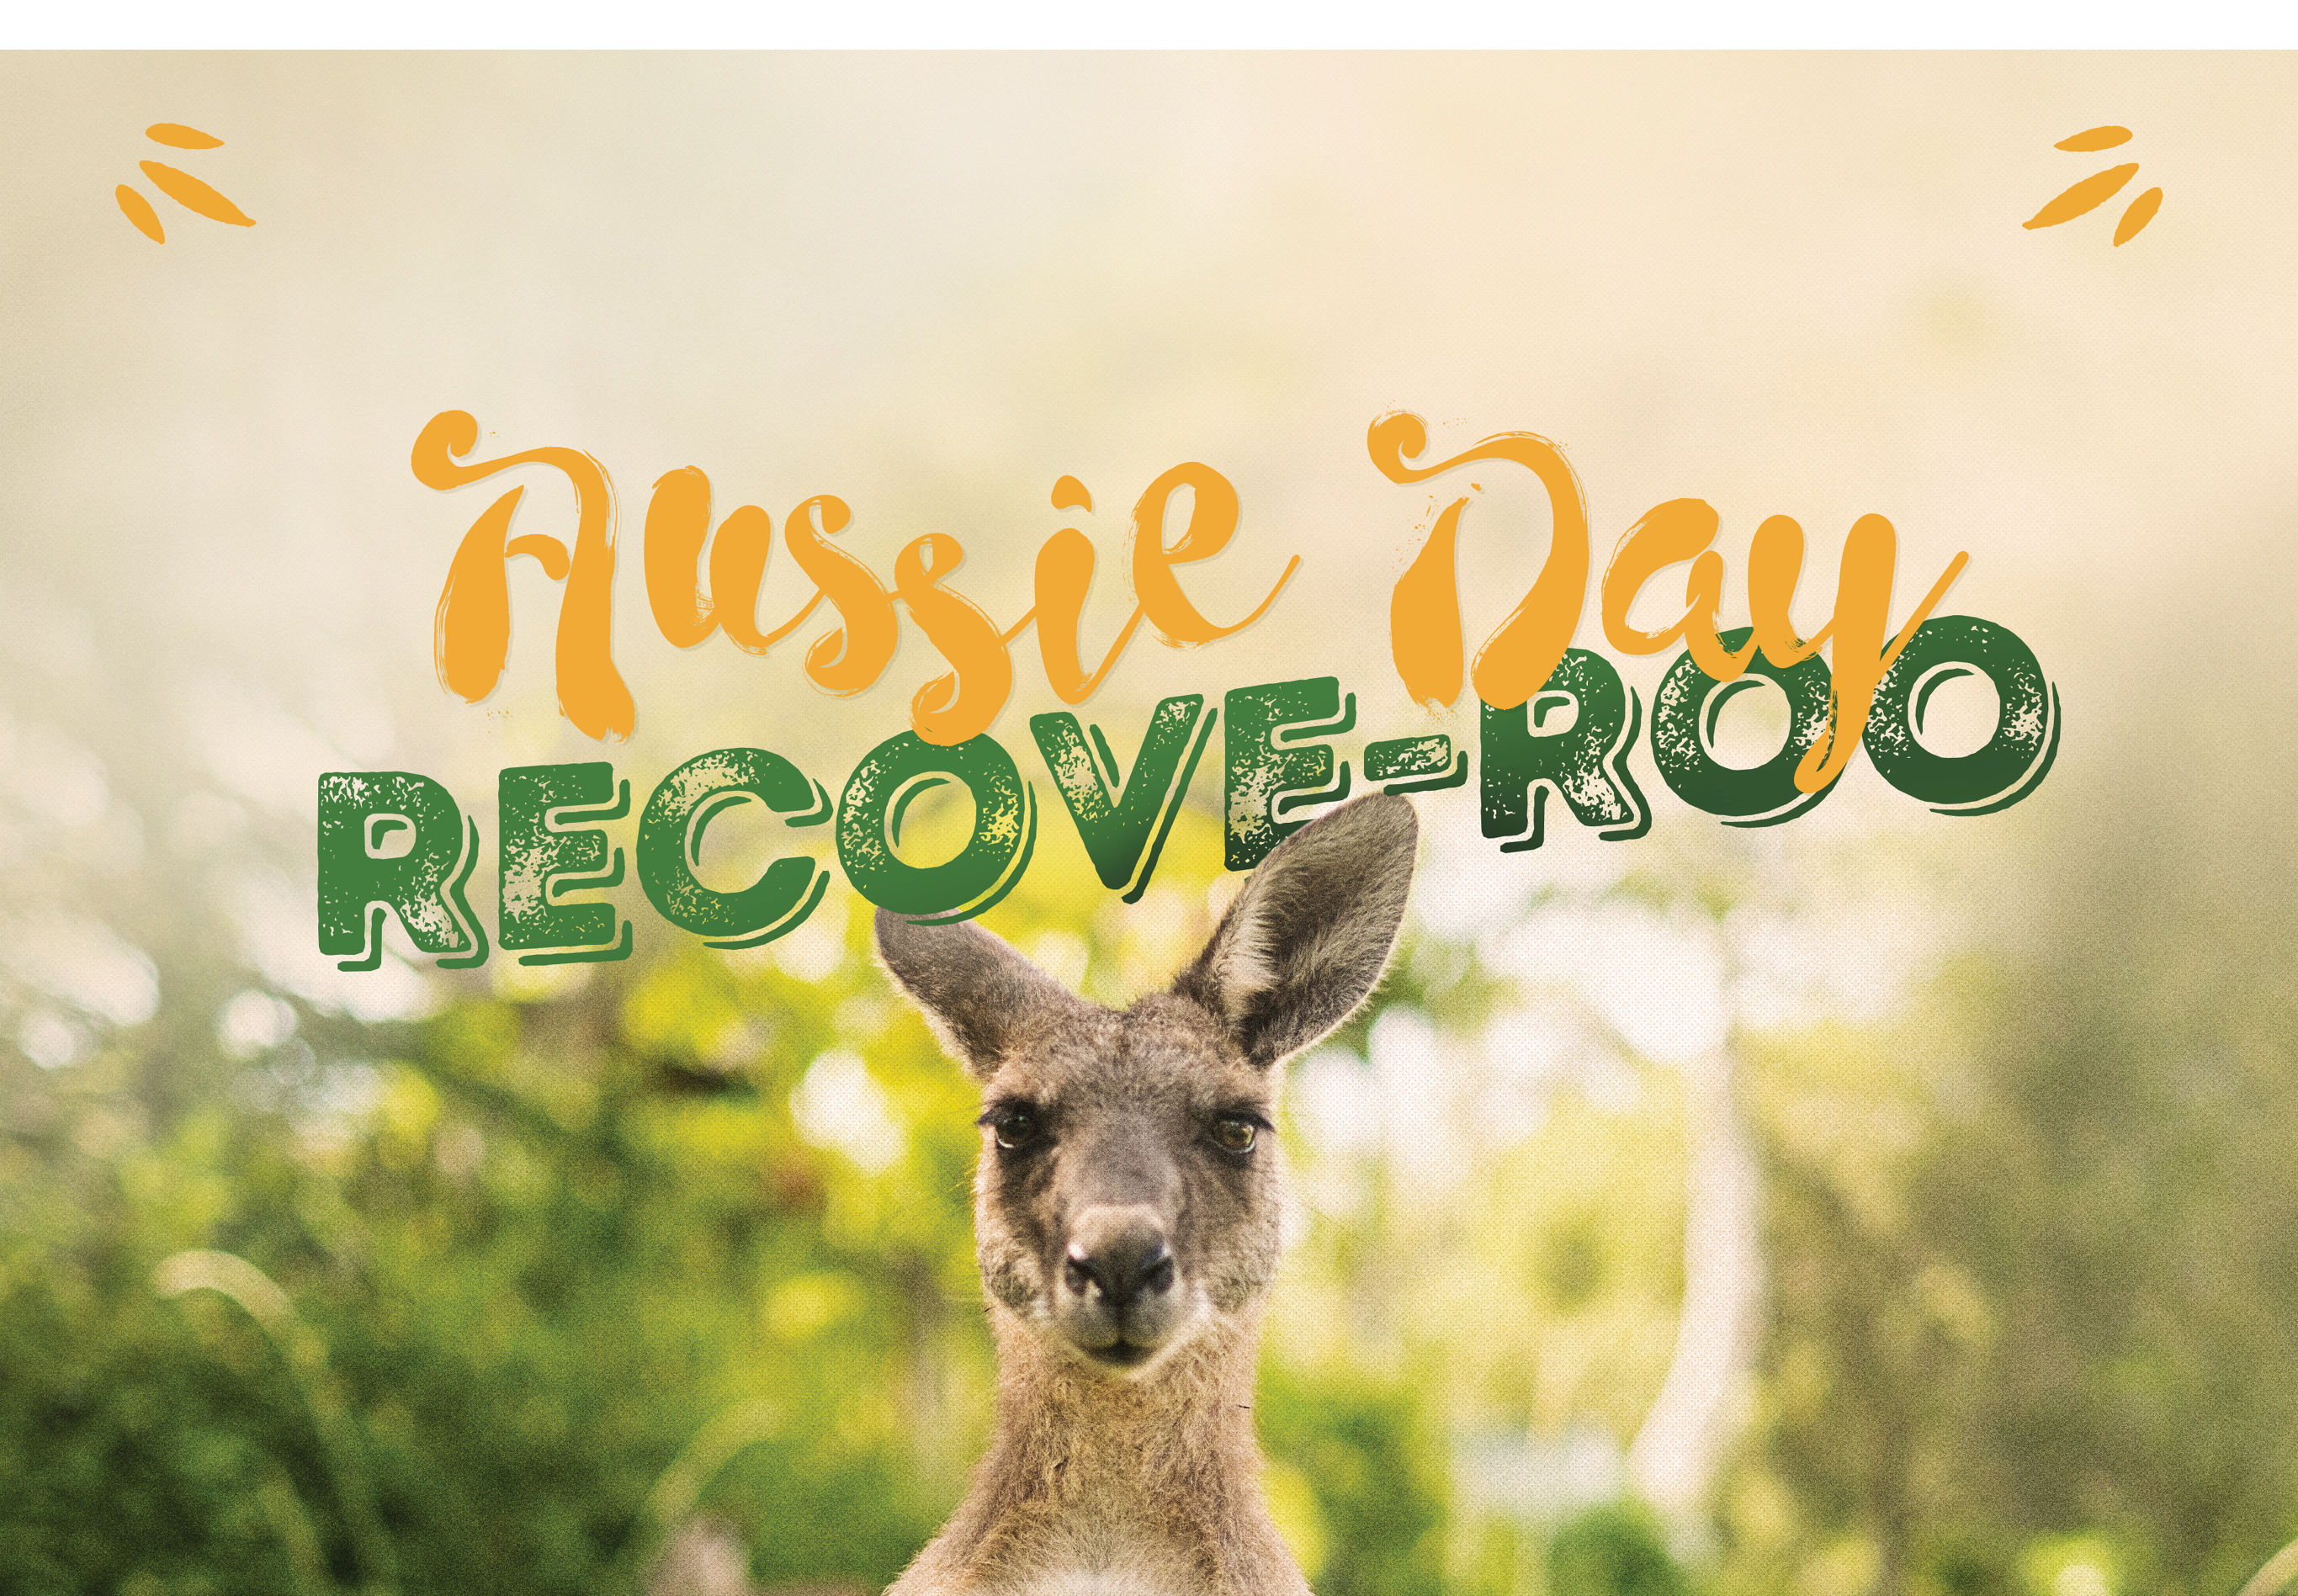 Recove-roo Day @ The Hen